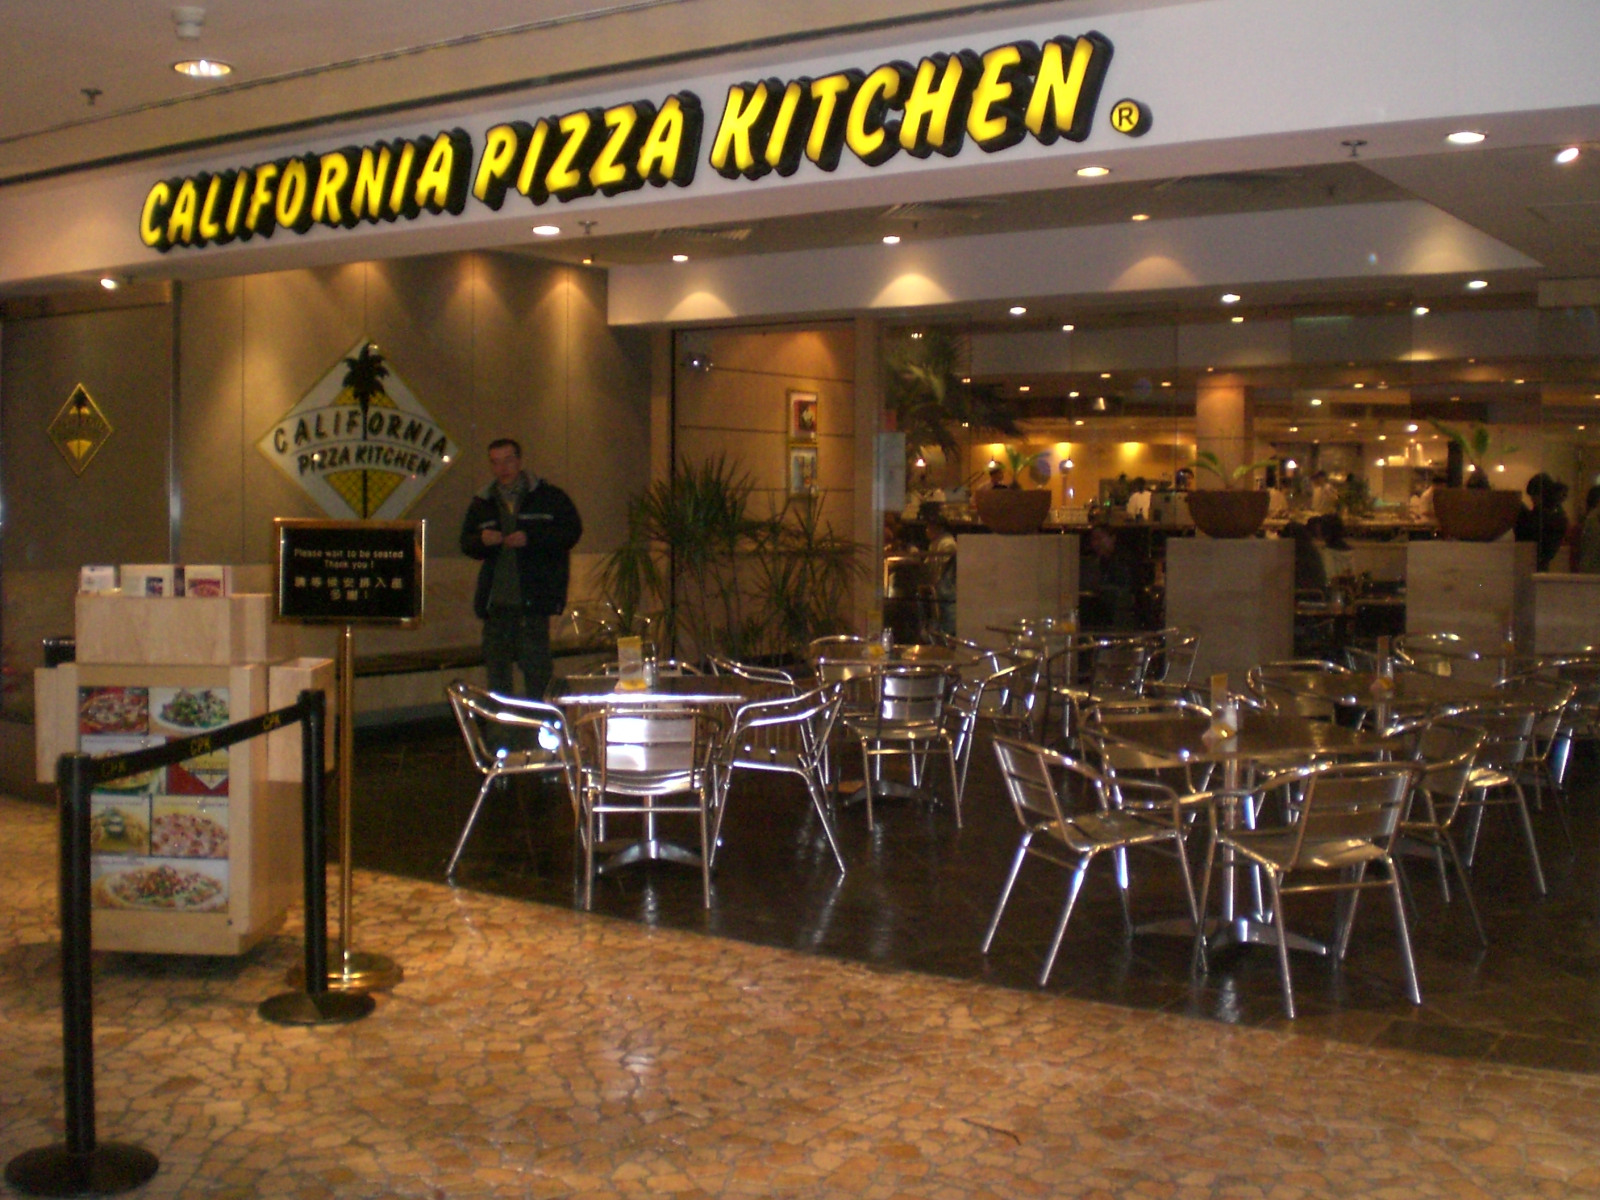 California Pizza Kitchen Zomato Chennai